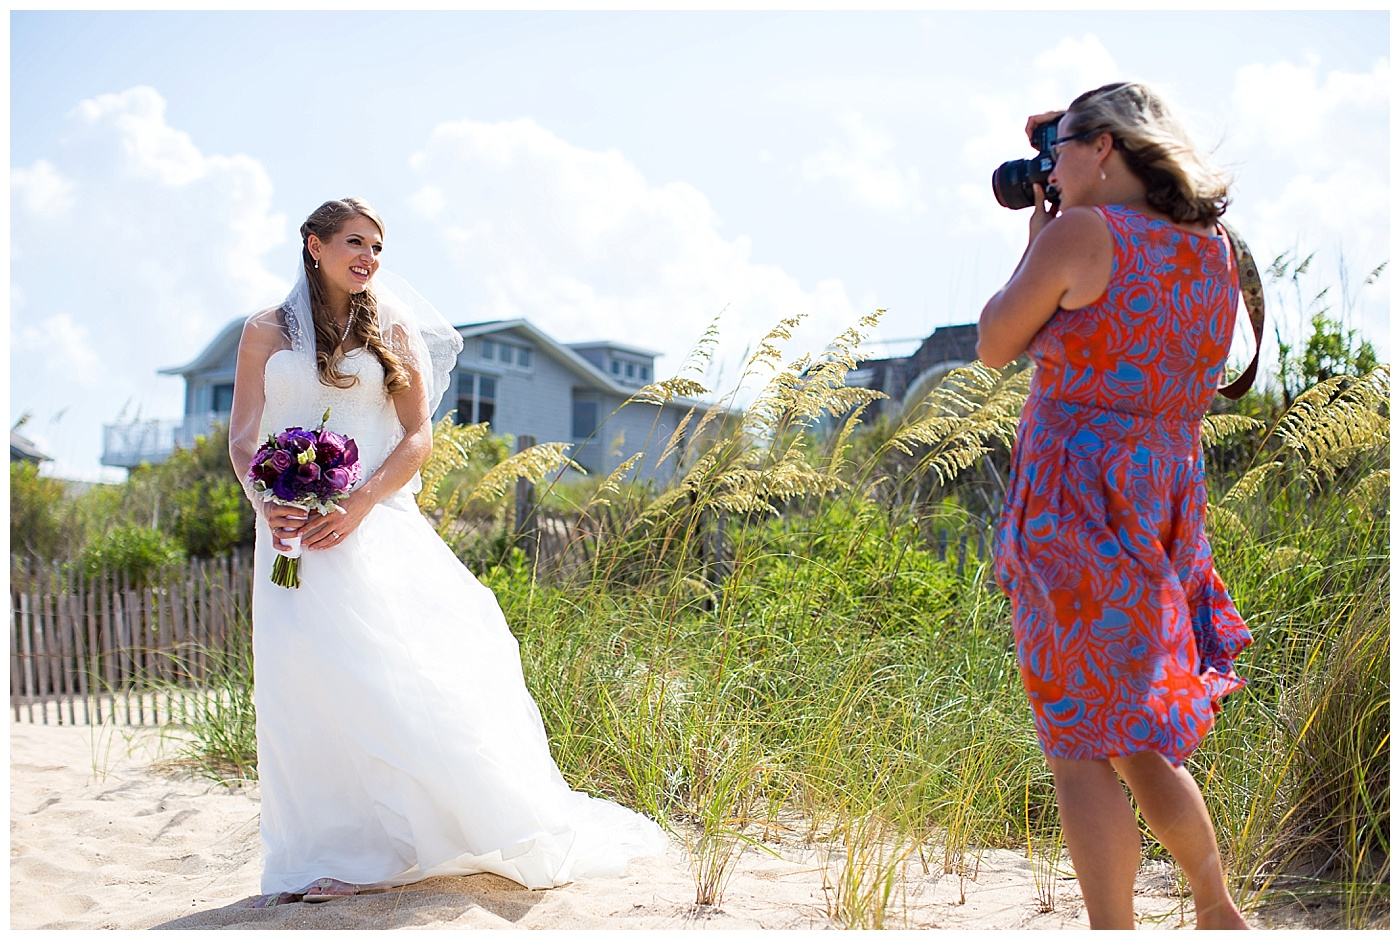 2015 Behind the Scenes | Wedding Photography